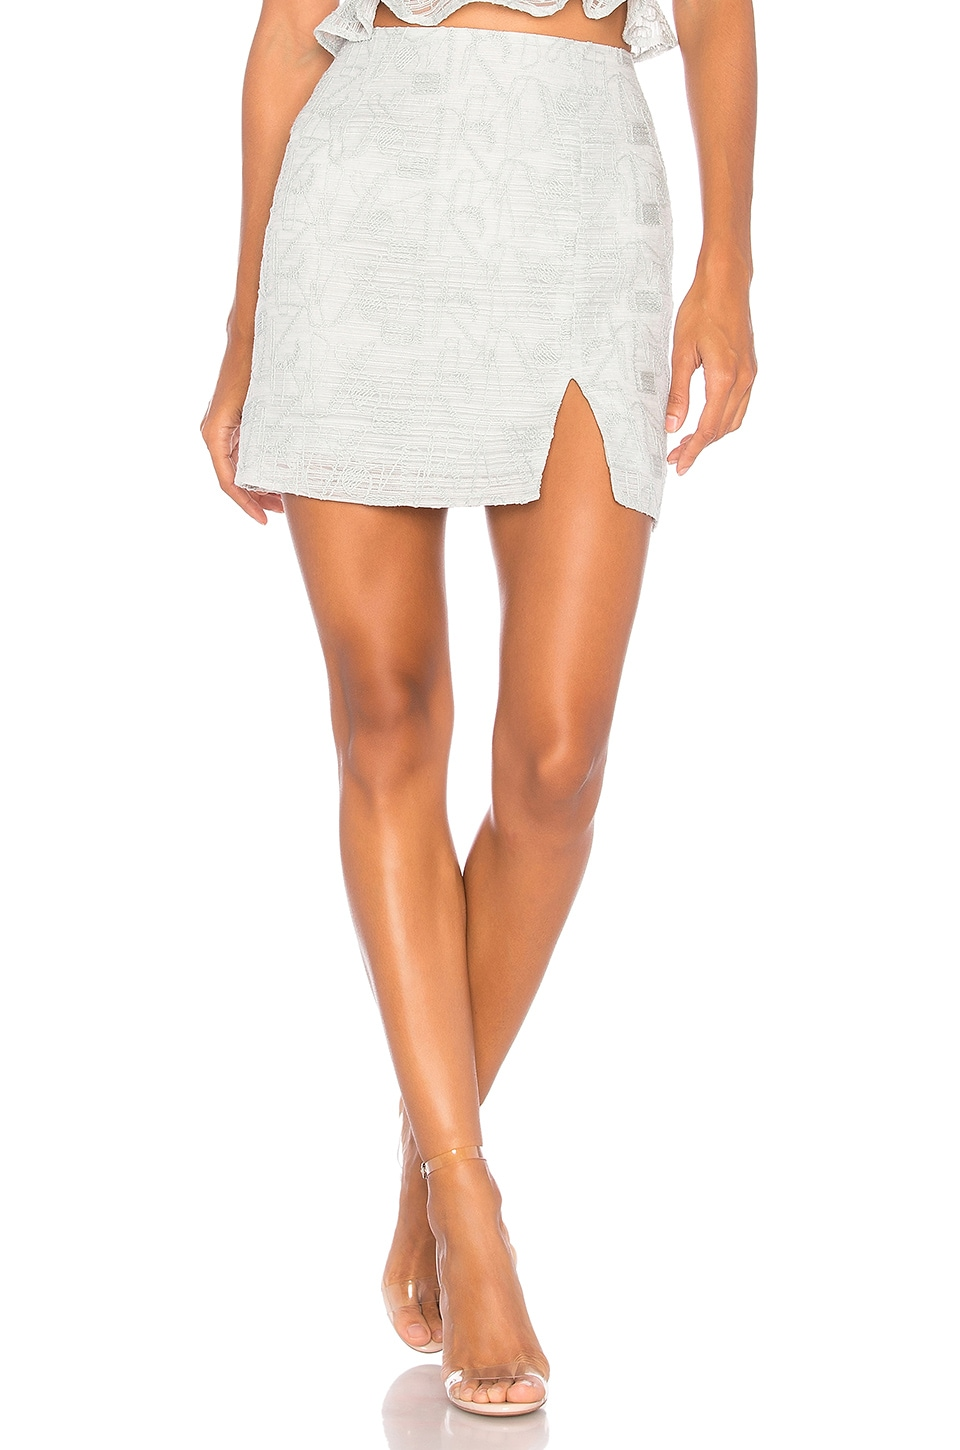 J.O.A. Lace Mini Skirt in Mint